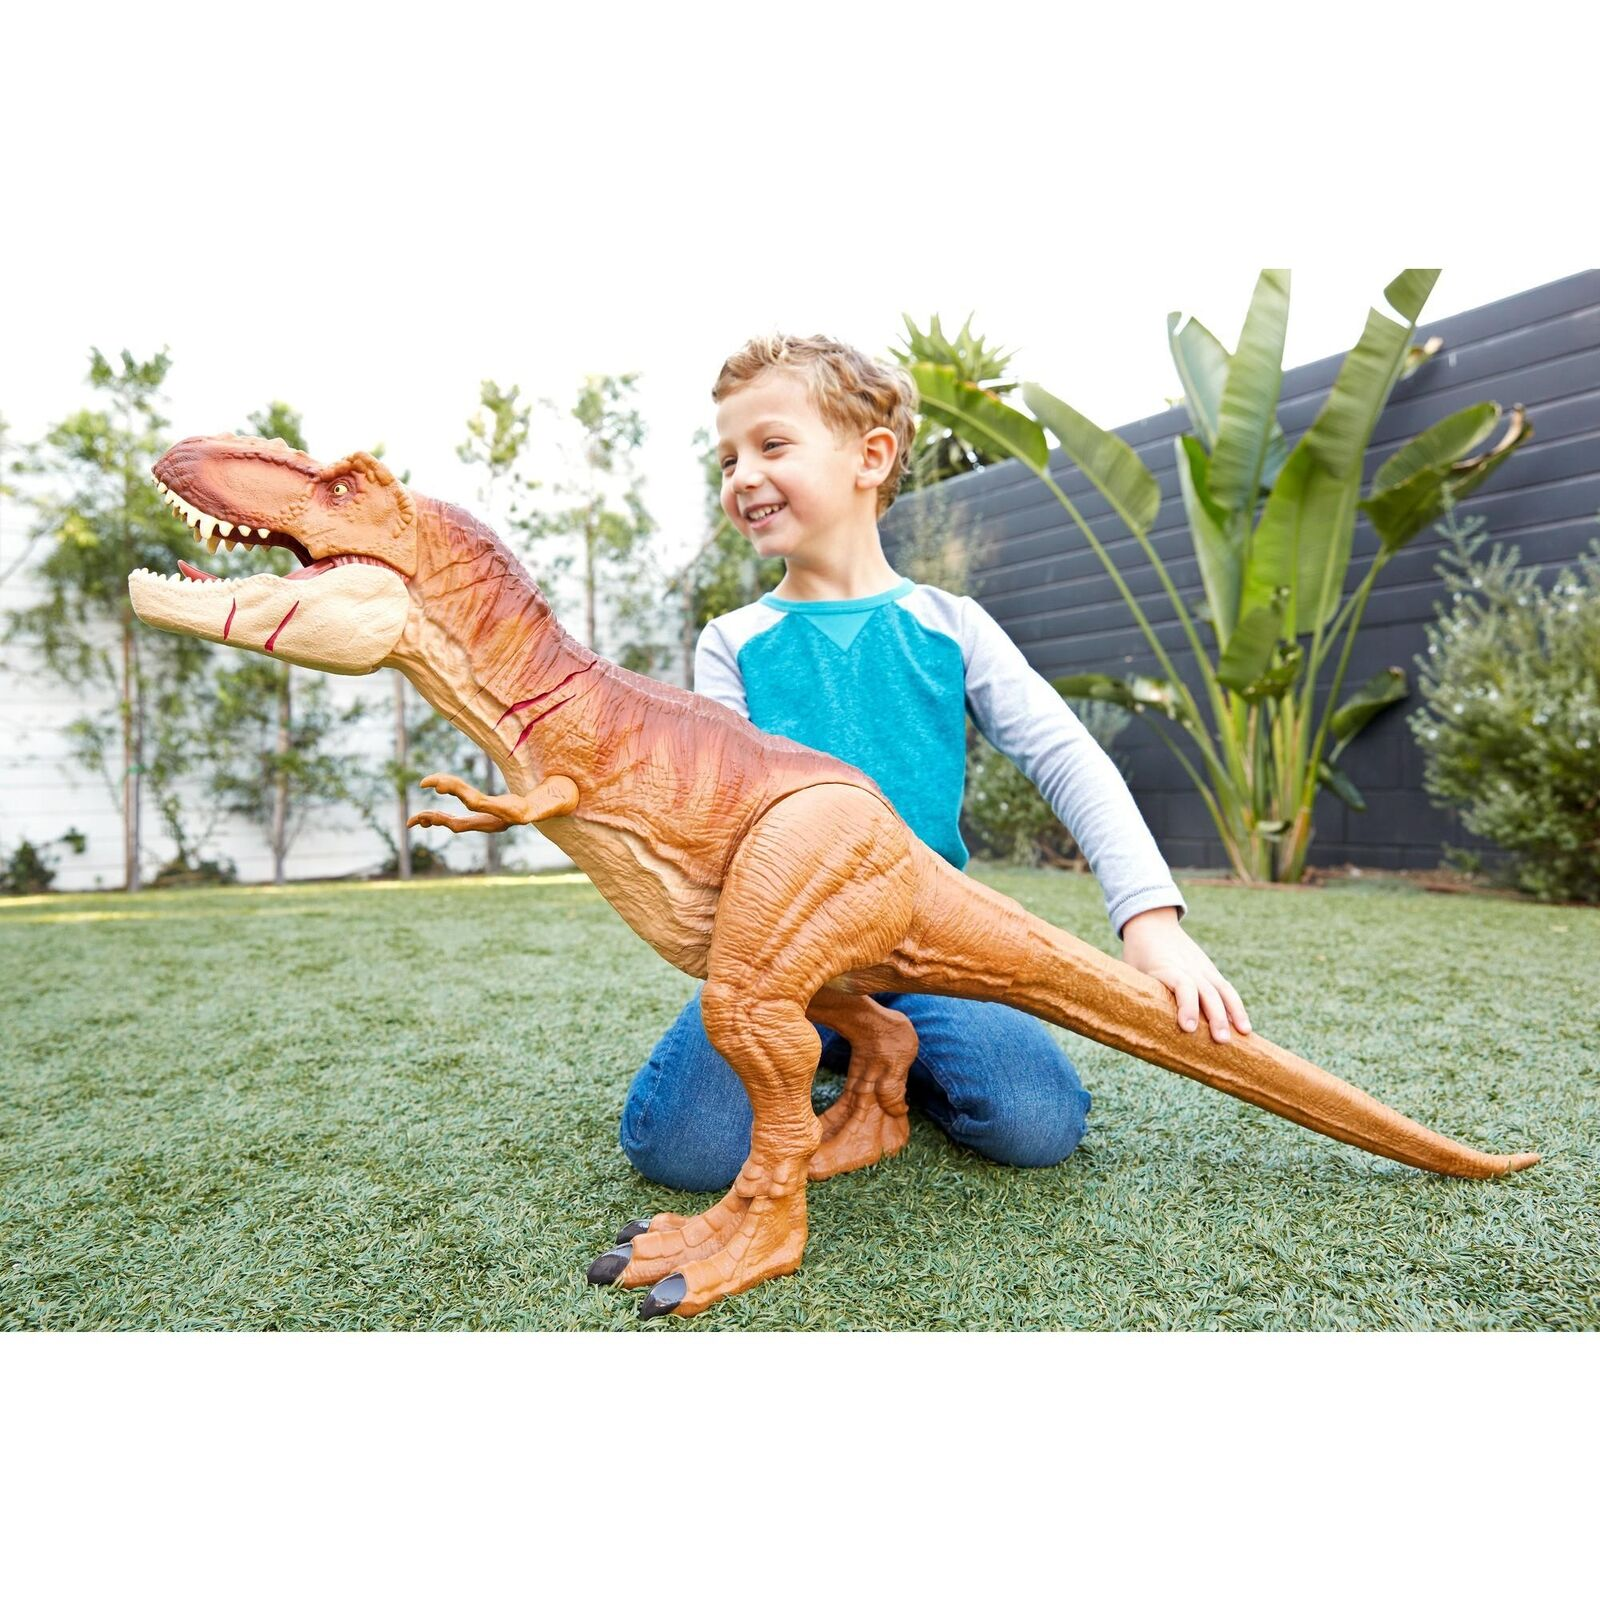 Big Dinosaur Toys Jurassic World Kids Fun Gift Giant TRex Large Figure For Boys